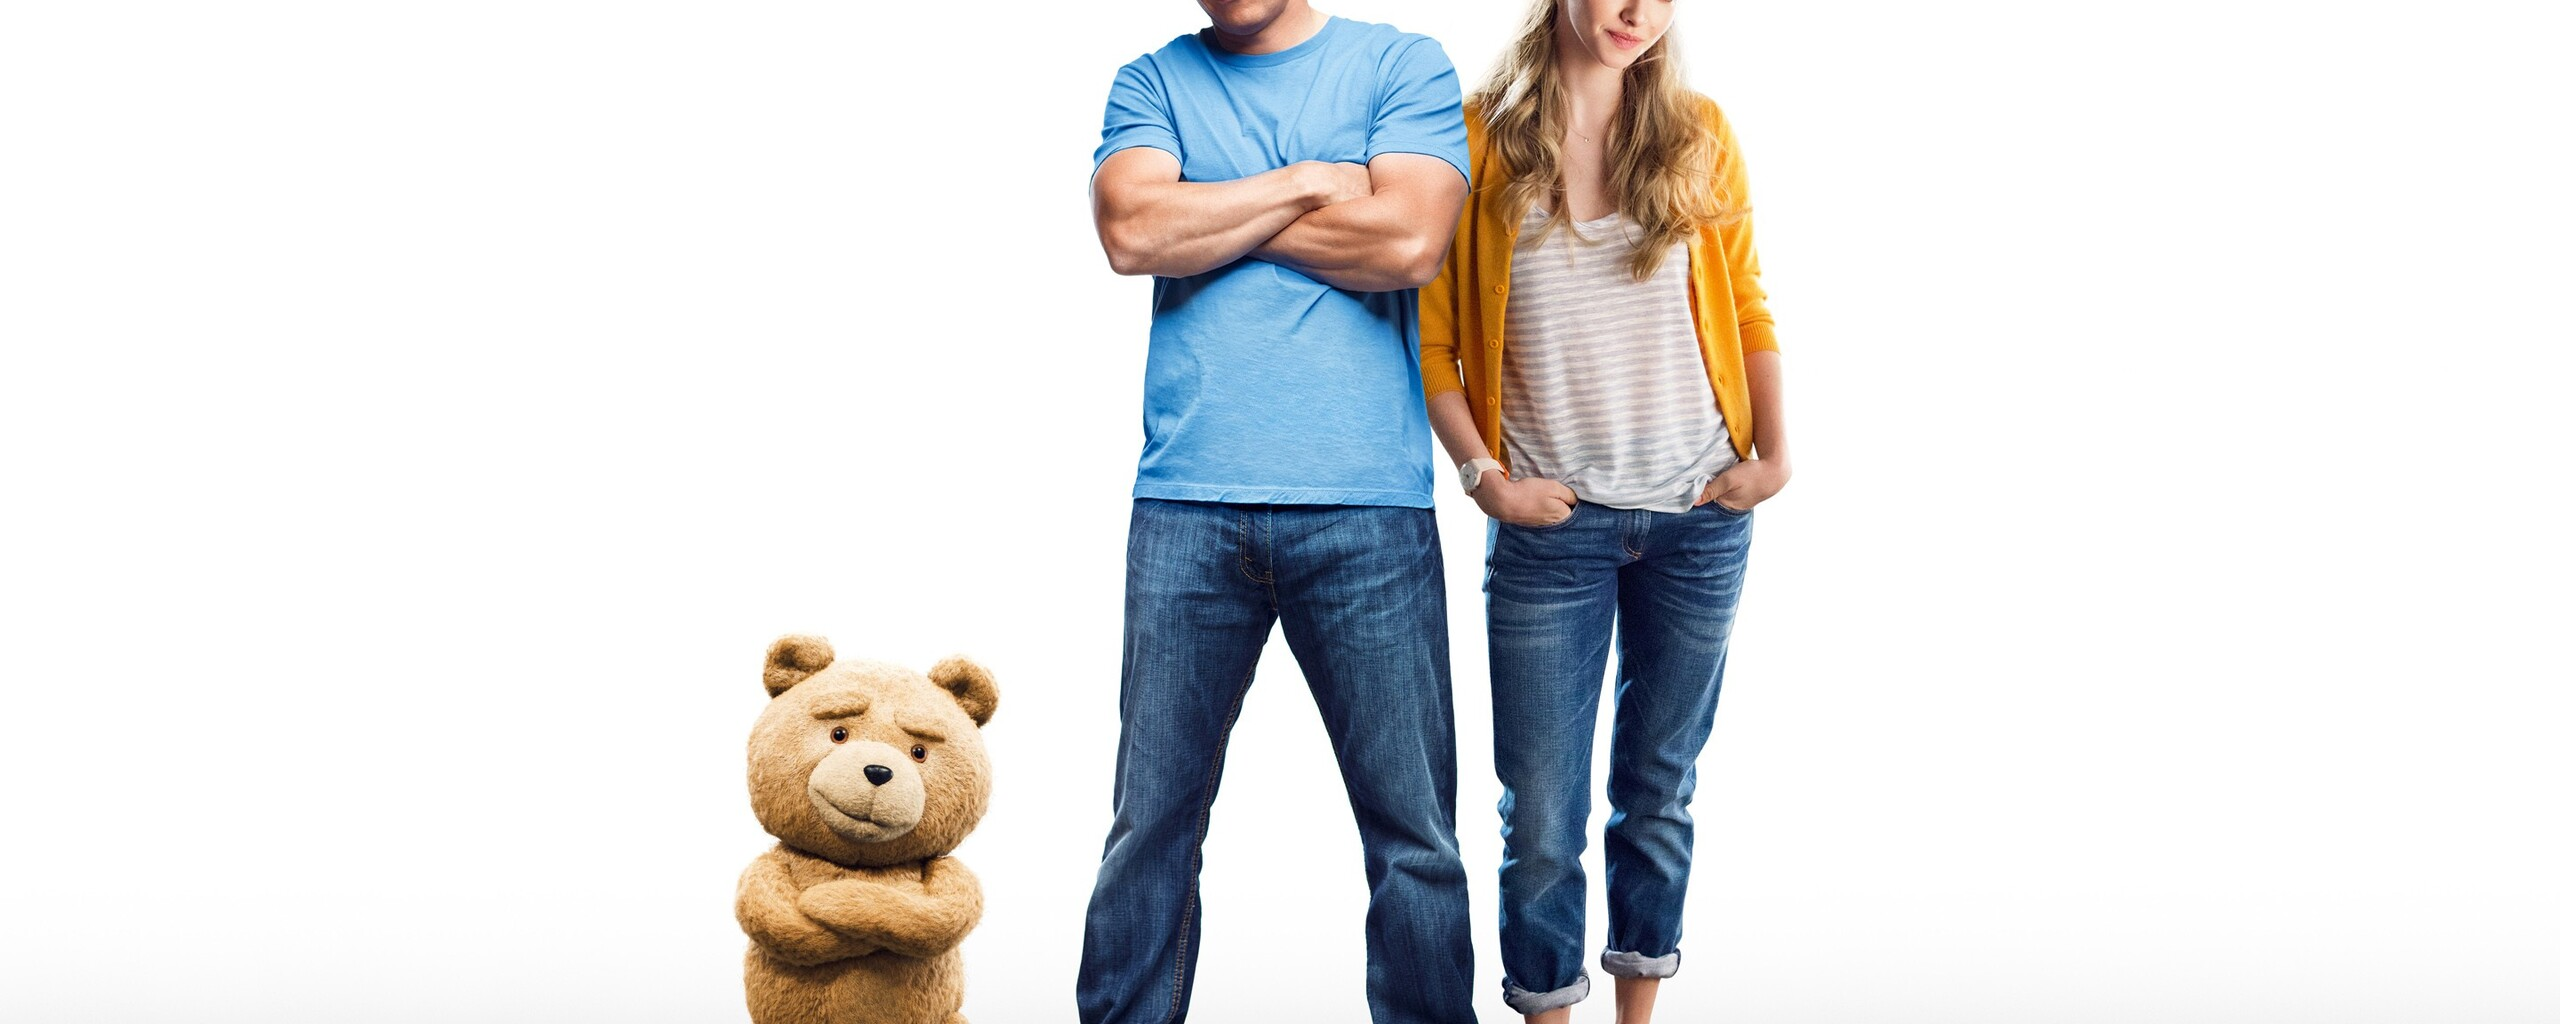 download ted 2 movie hd 4k wallpapers in 2560x1024 screen resolution